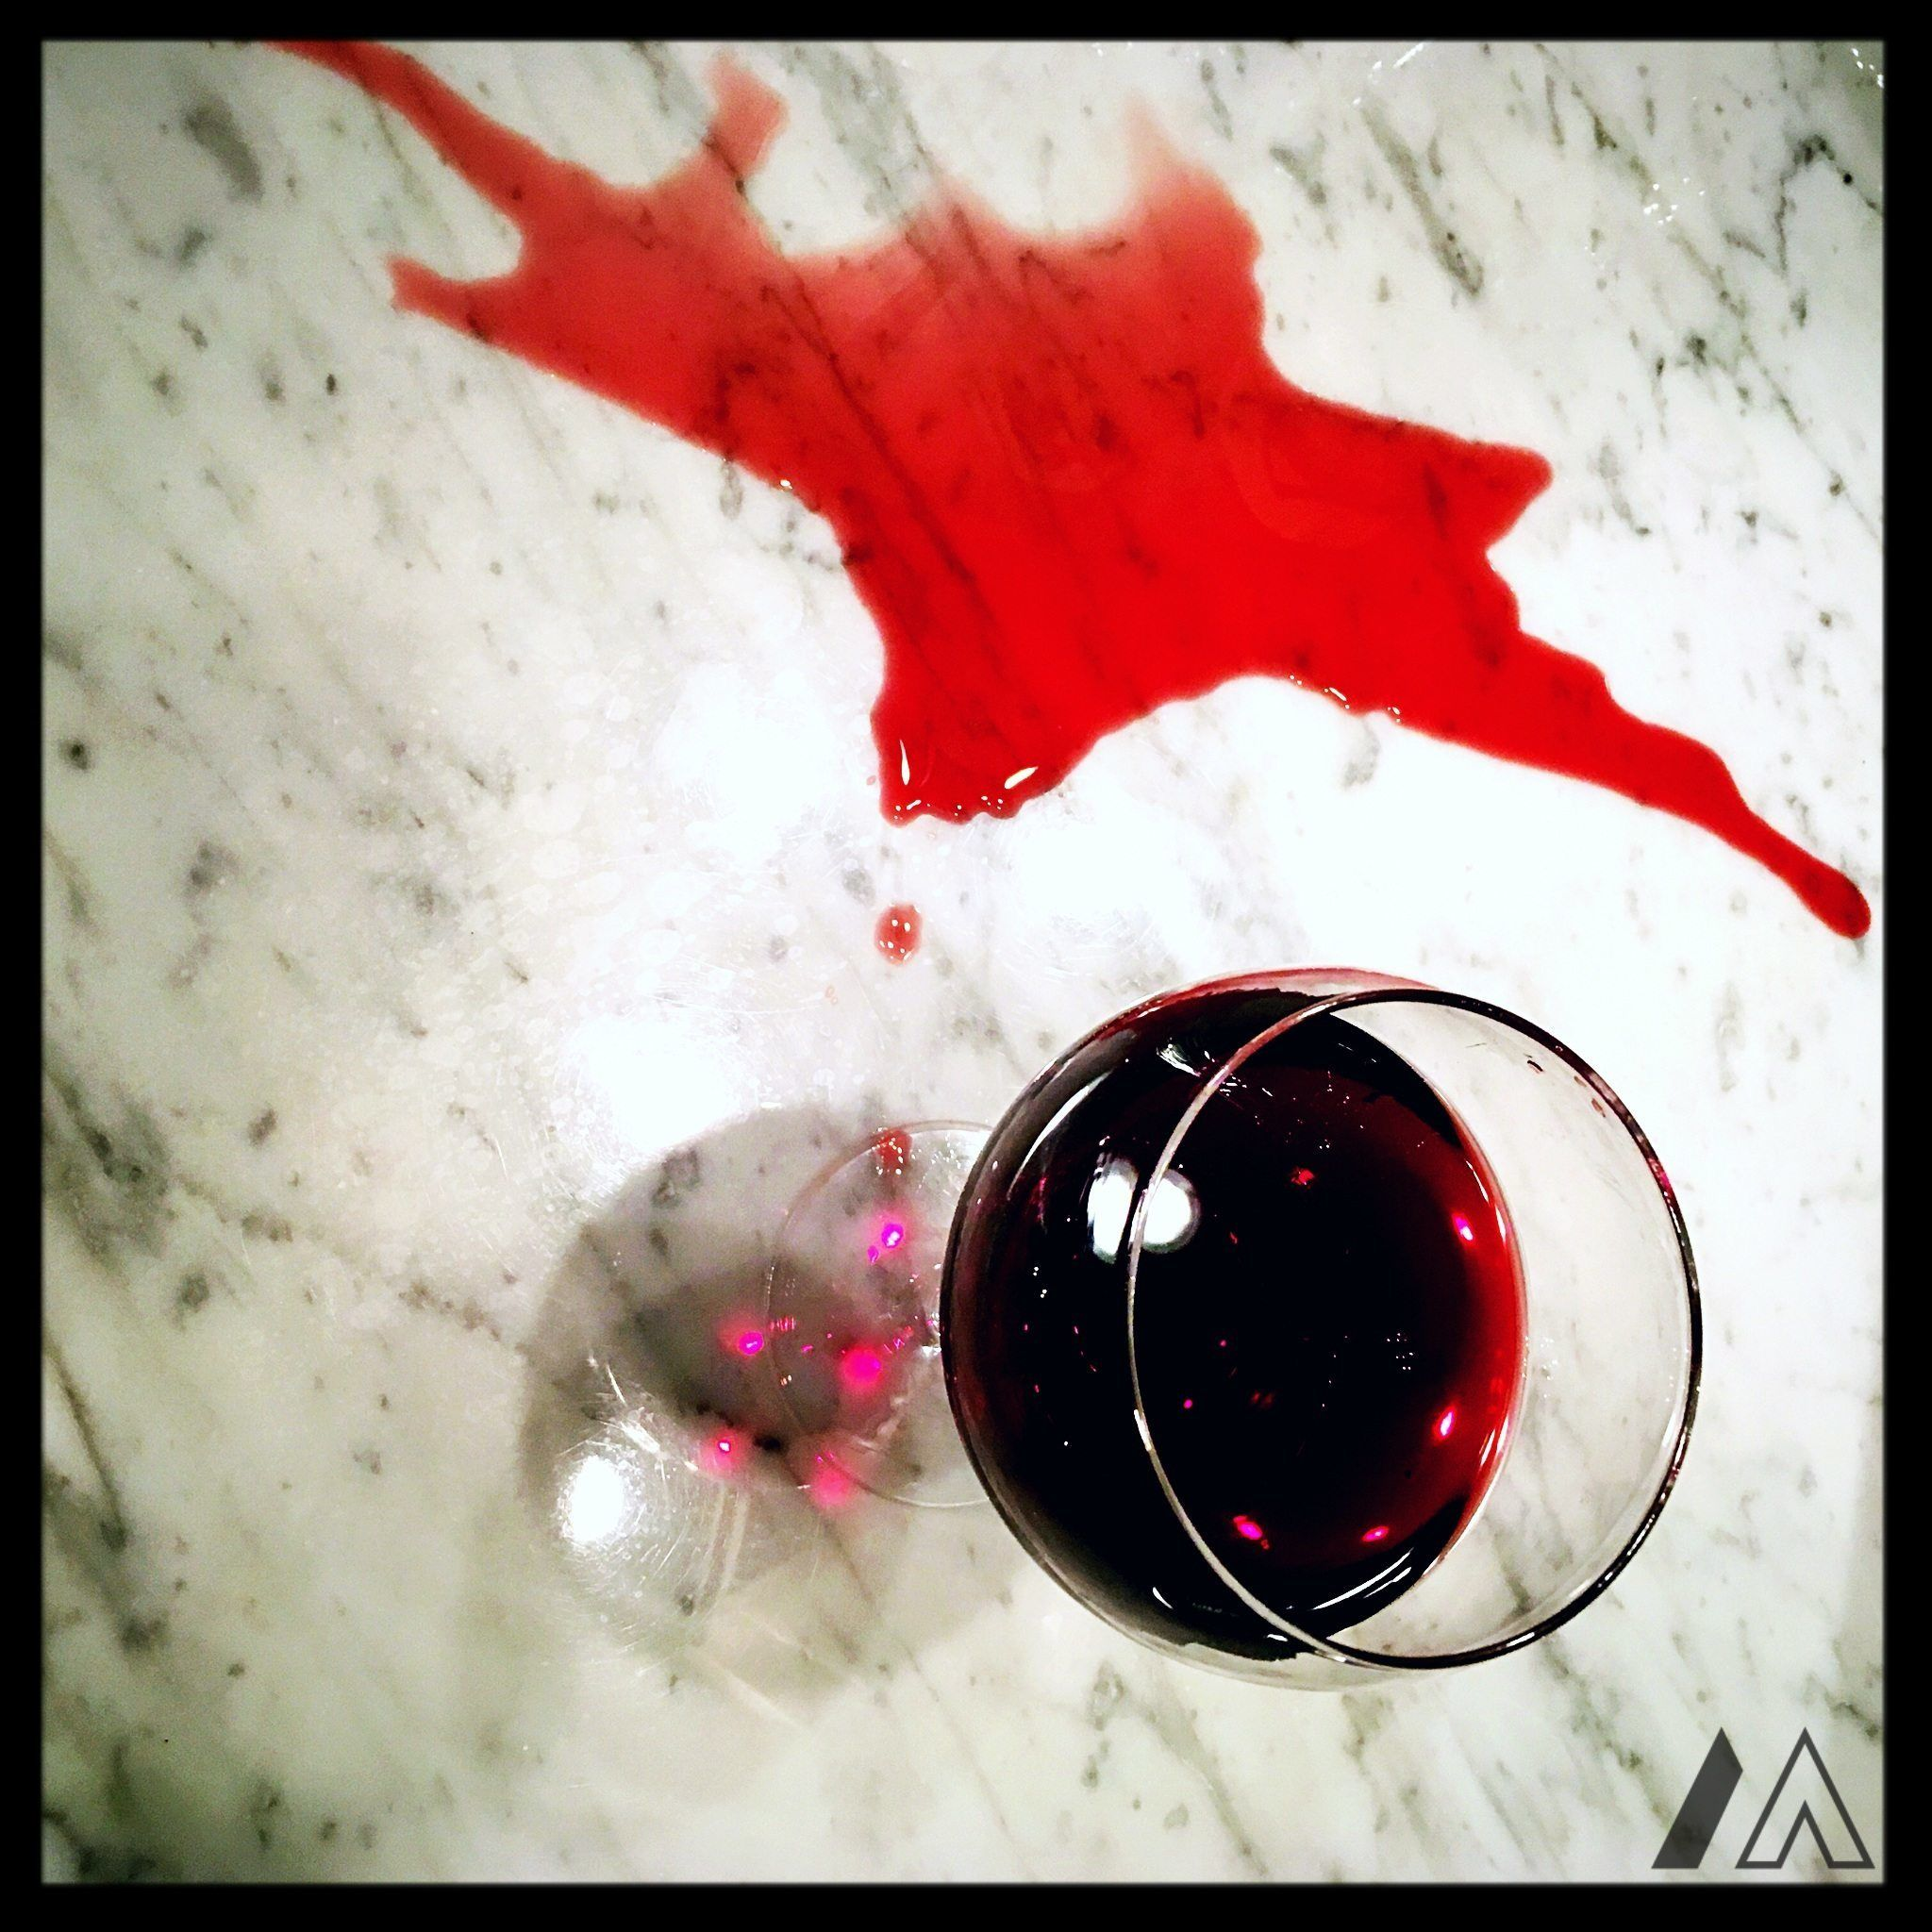 6 Easy Steps To Marble Stain Removal In 2020 Red Wine Stains Wine Stain Remover Wine Stains